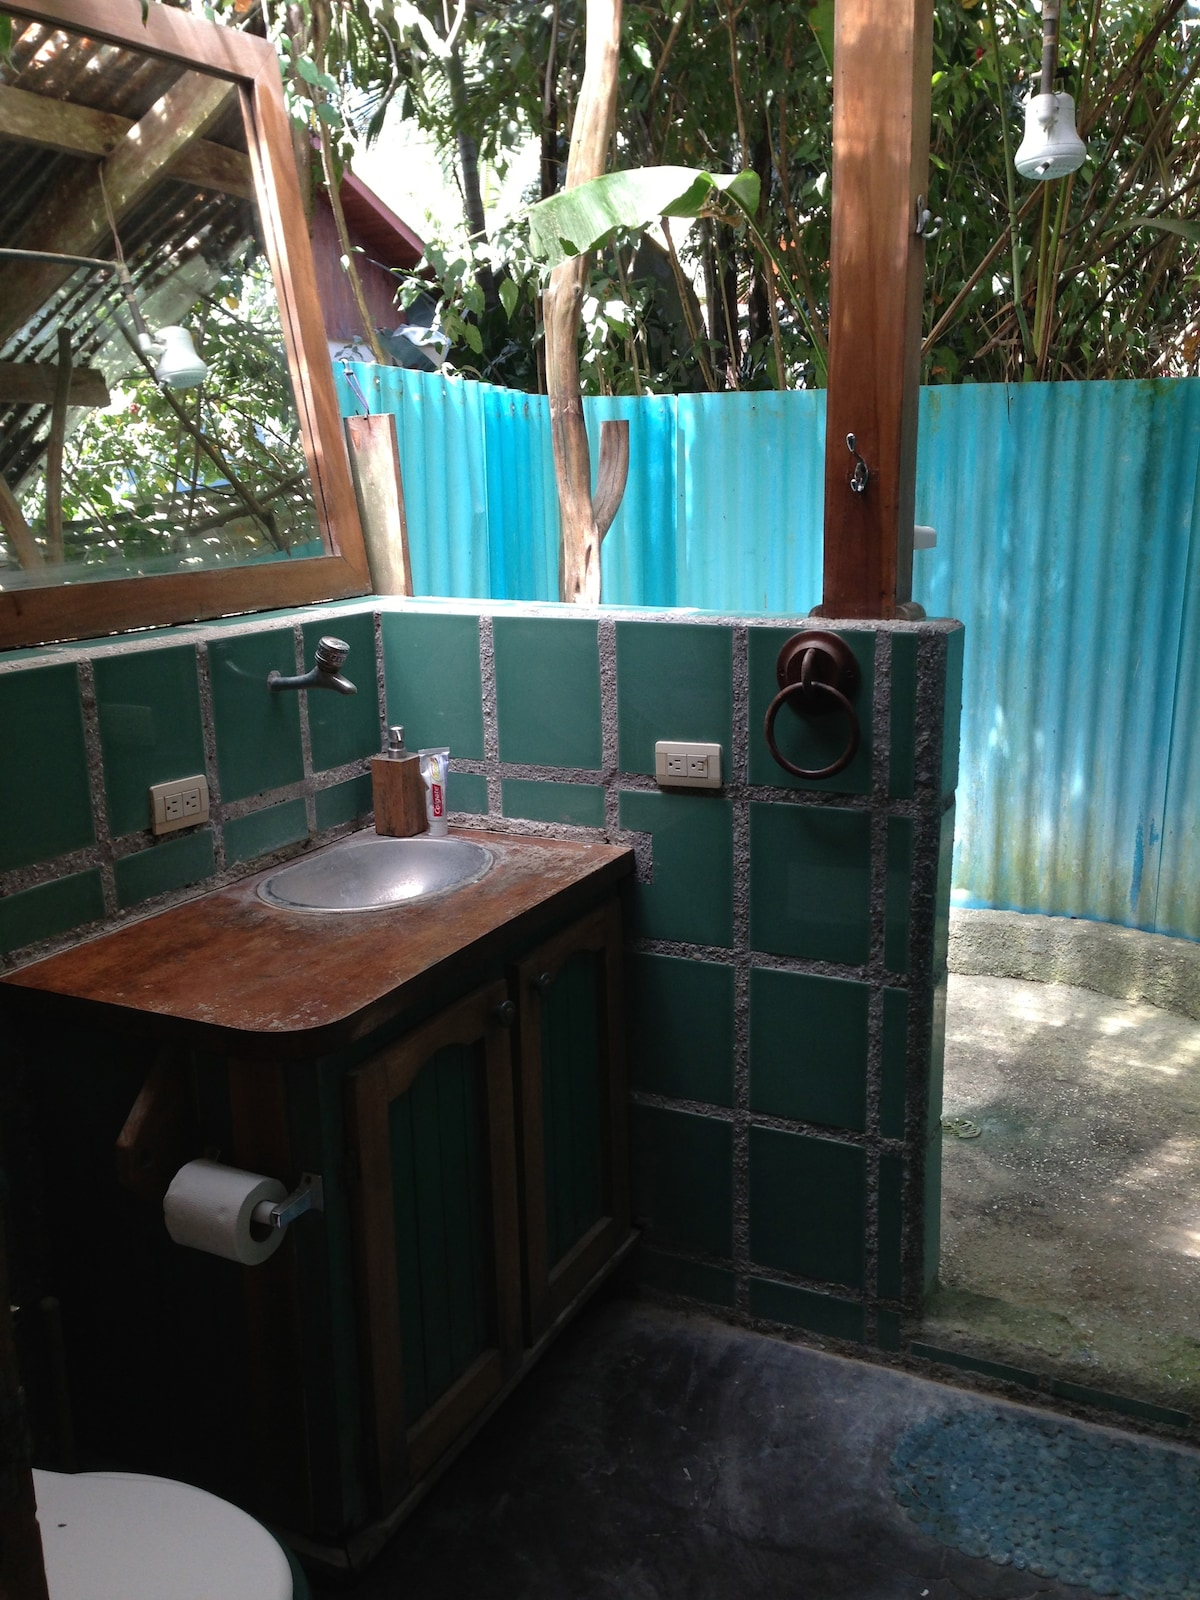 Indoor/outdoor bathroom surrounded by tropical plants